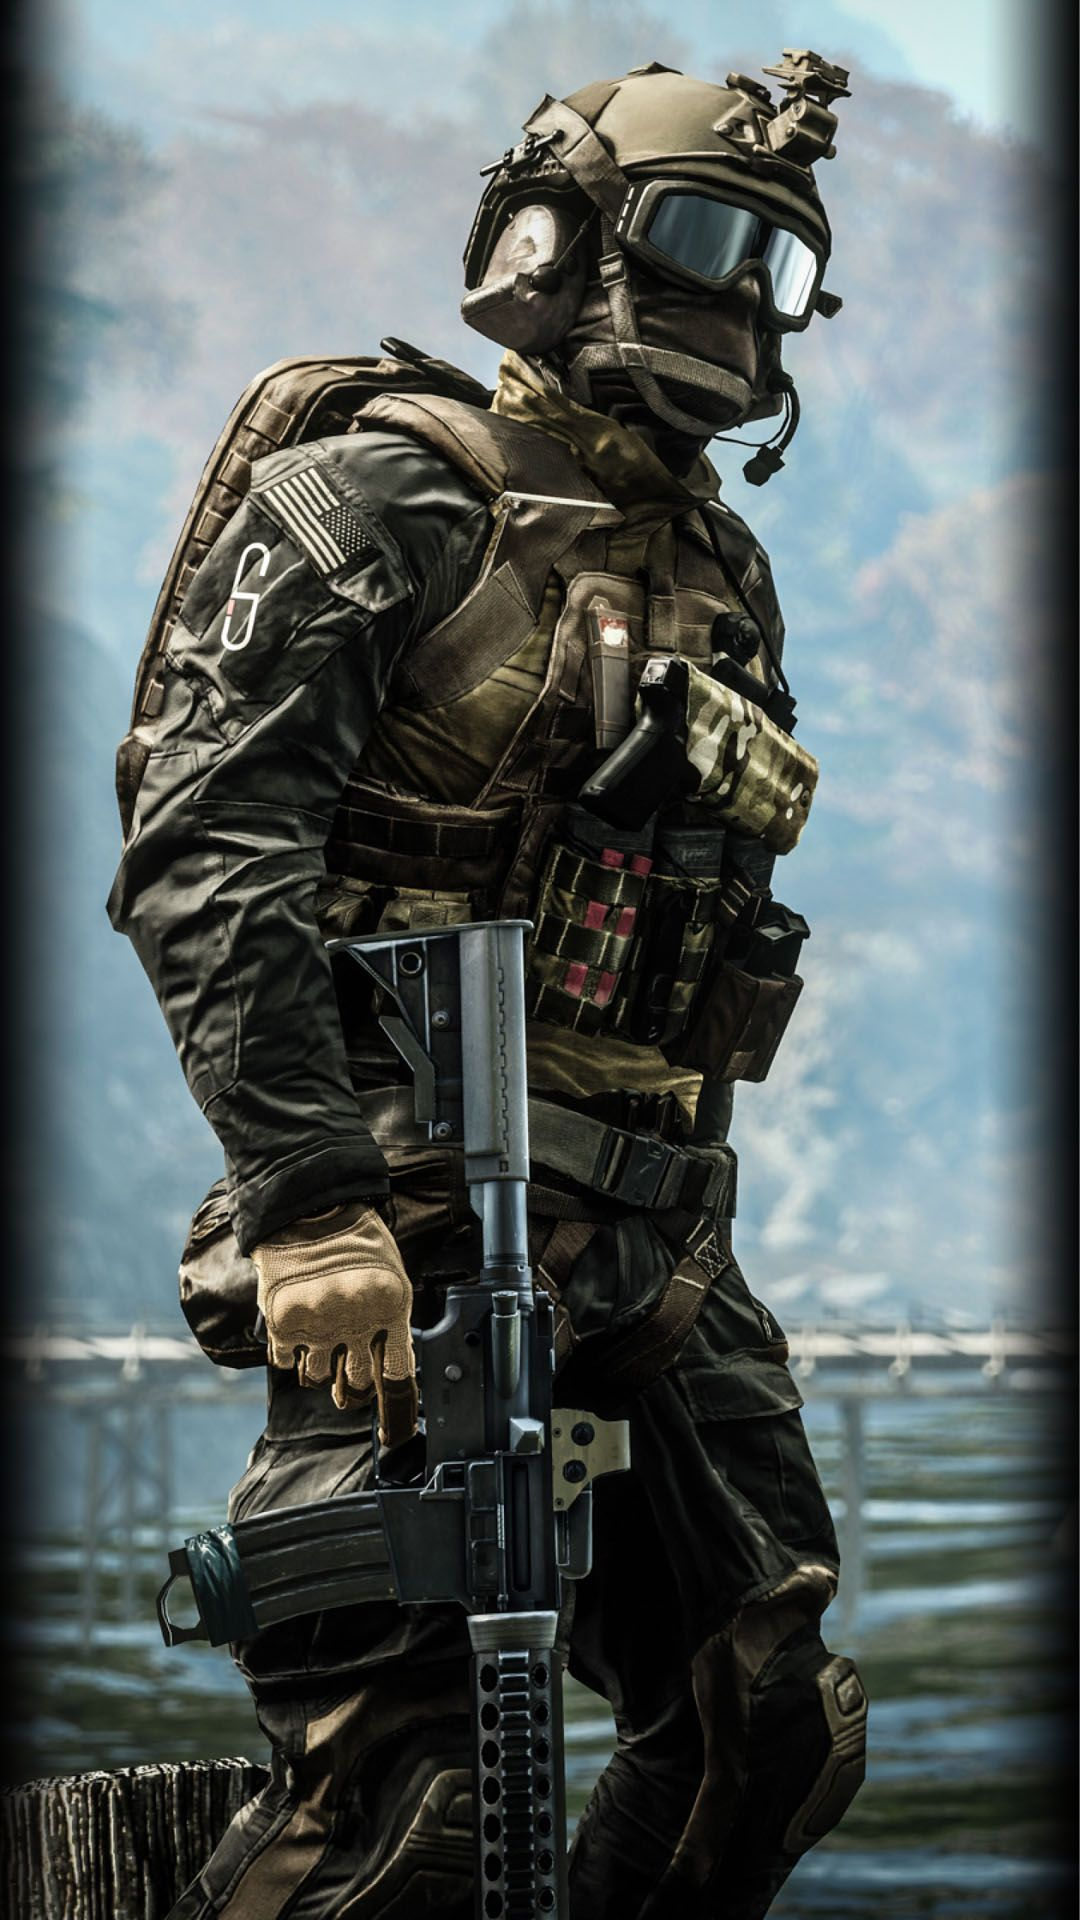 Army Wallpapers 4k Hd Army Backgrounds On Wallpaperbat